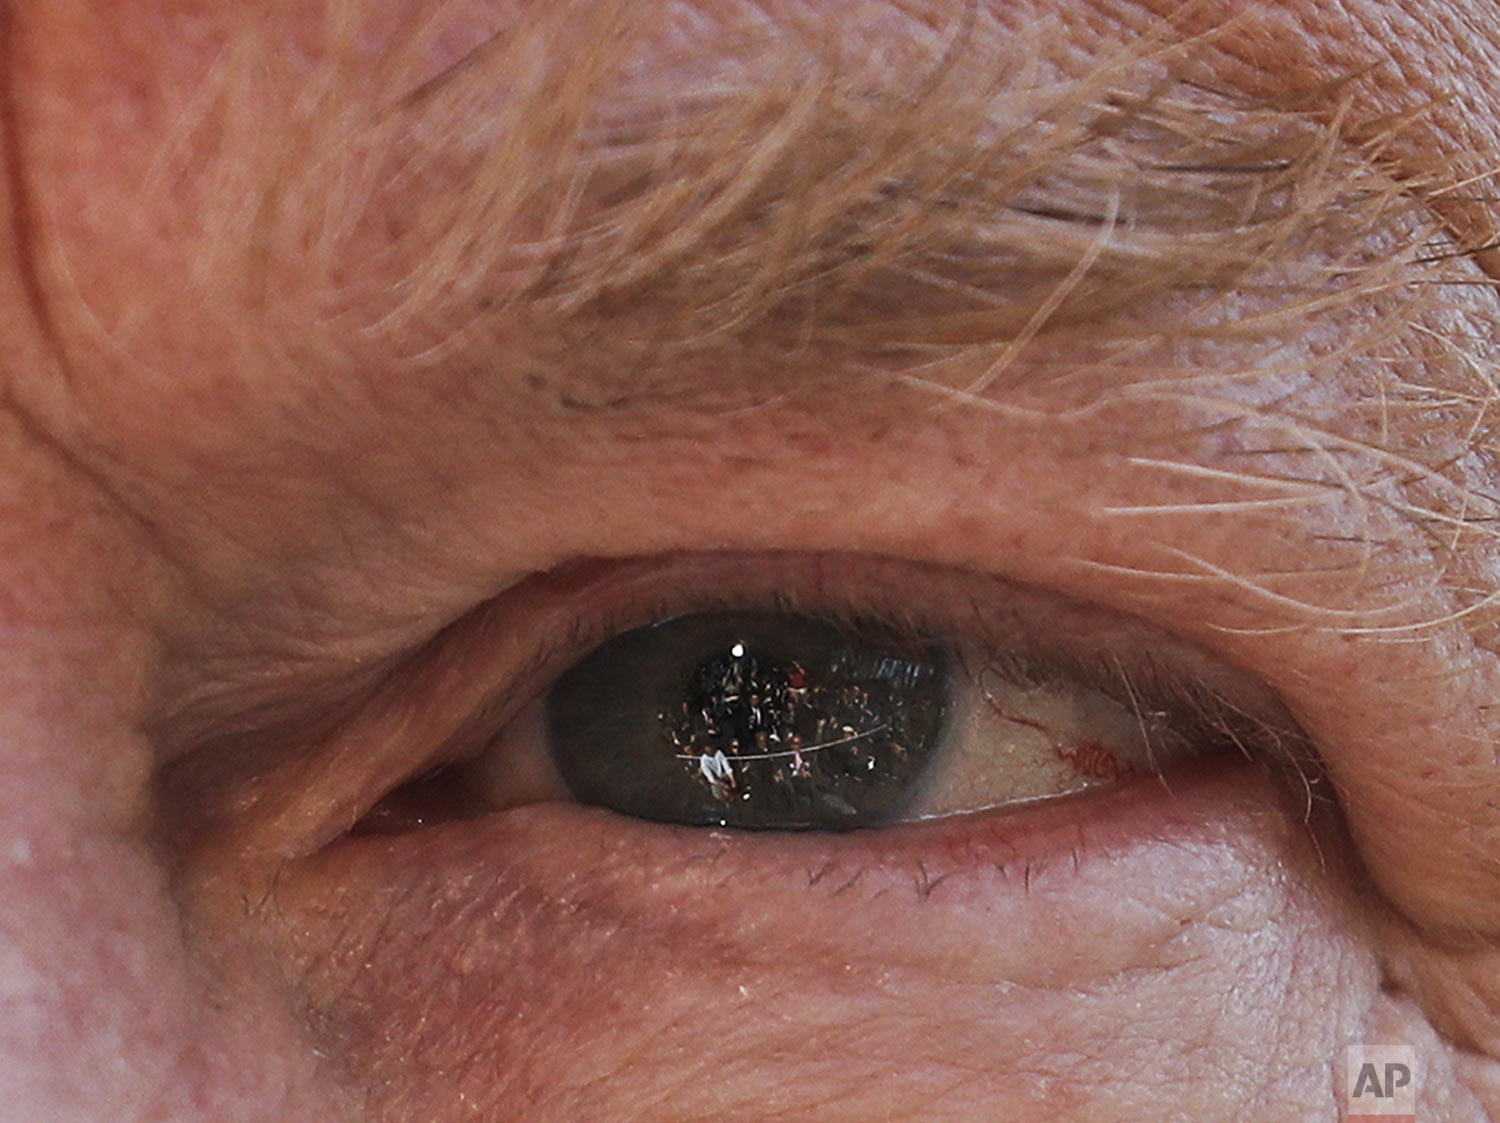 Members of the media are reflected in the left eye of President Donald Trump as he answers questions on the South Lawn of the White House in Washington, before boarding the Marine One helicopter on Wednesday, April 10, 2019. (AP Photo/Pablo Martinez Monsivais)